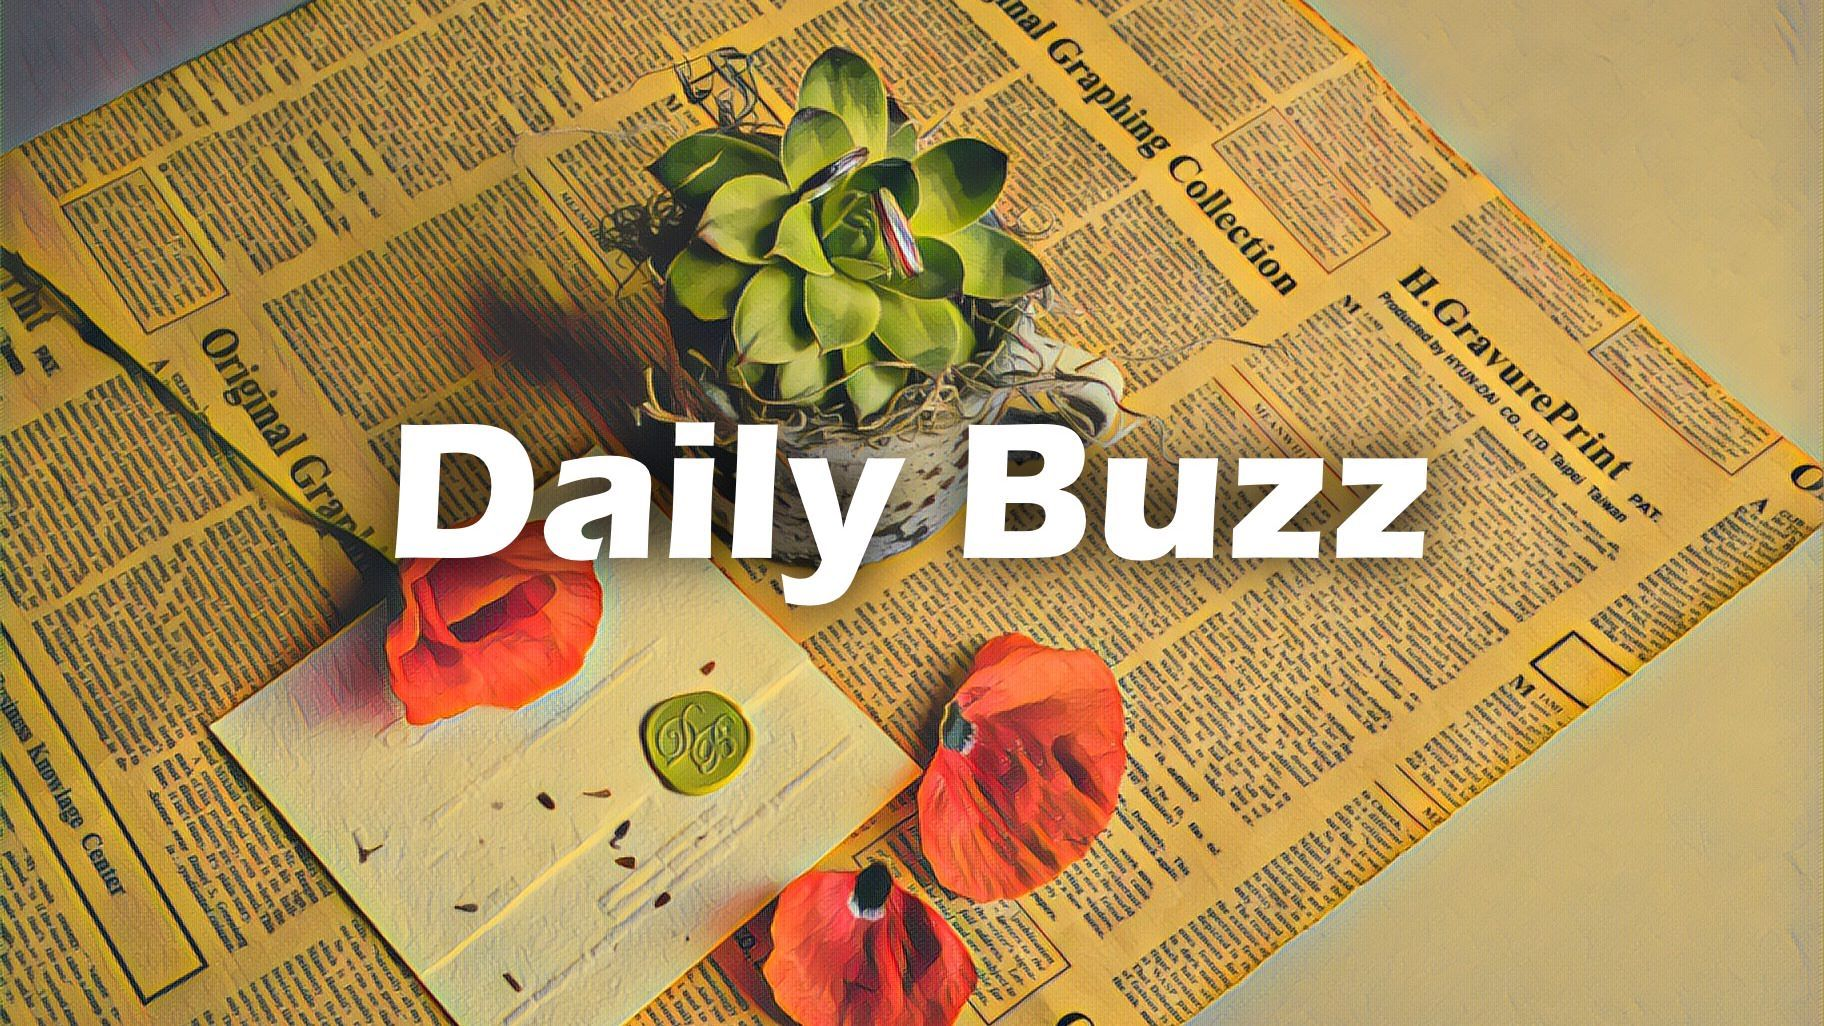 DailyBuzz Sunday 3 February 2019